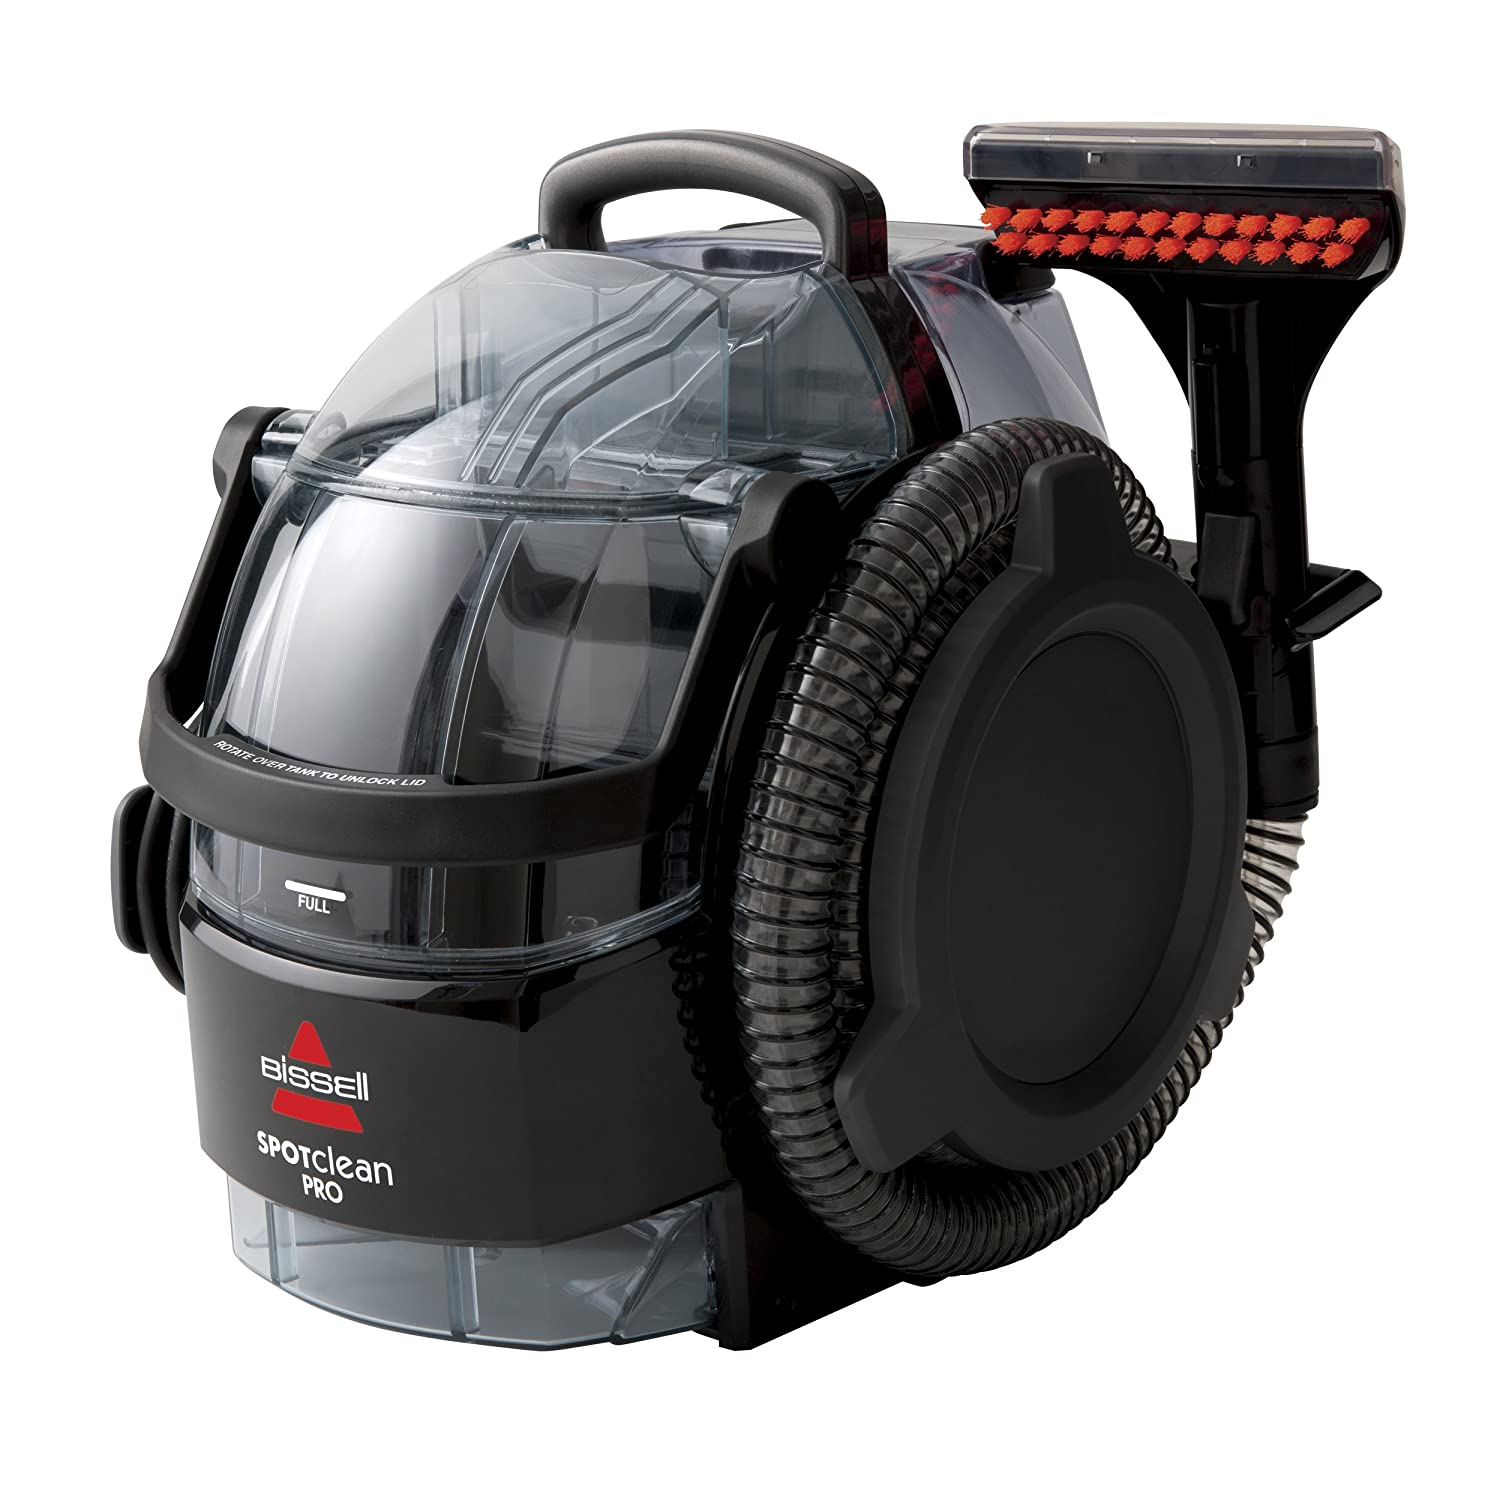 Bissell 3624 SpotClean Professional Portable Carpet Cleaner Corded